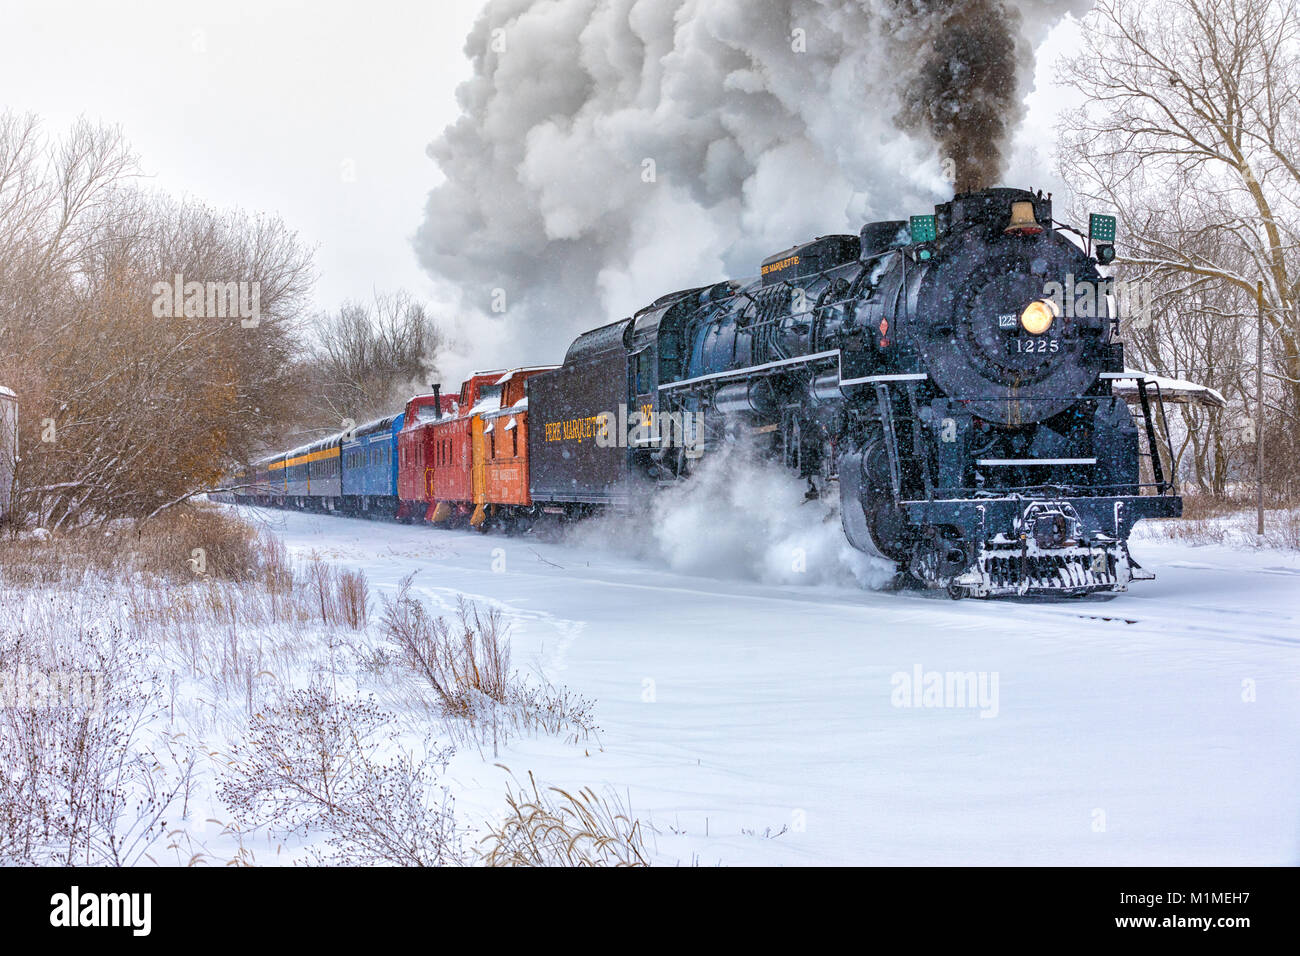 """The Pere Marquette 1225 """"North Pole Express"""" steams along snowy track on a winter day. Stock Photo"""